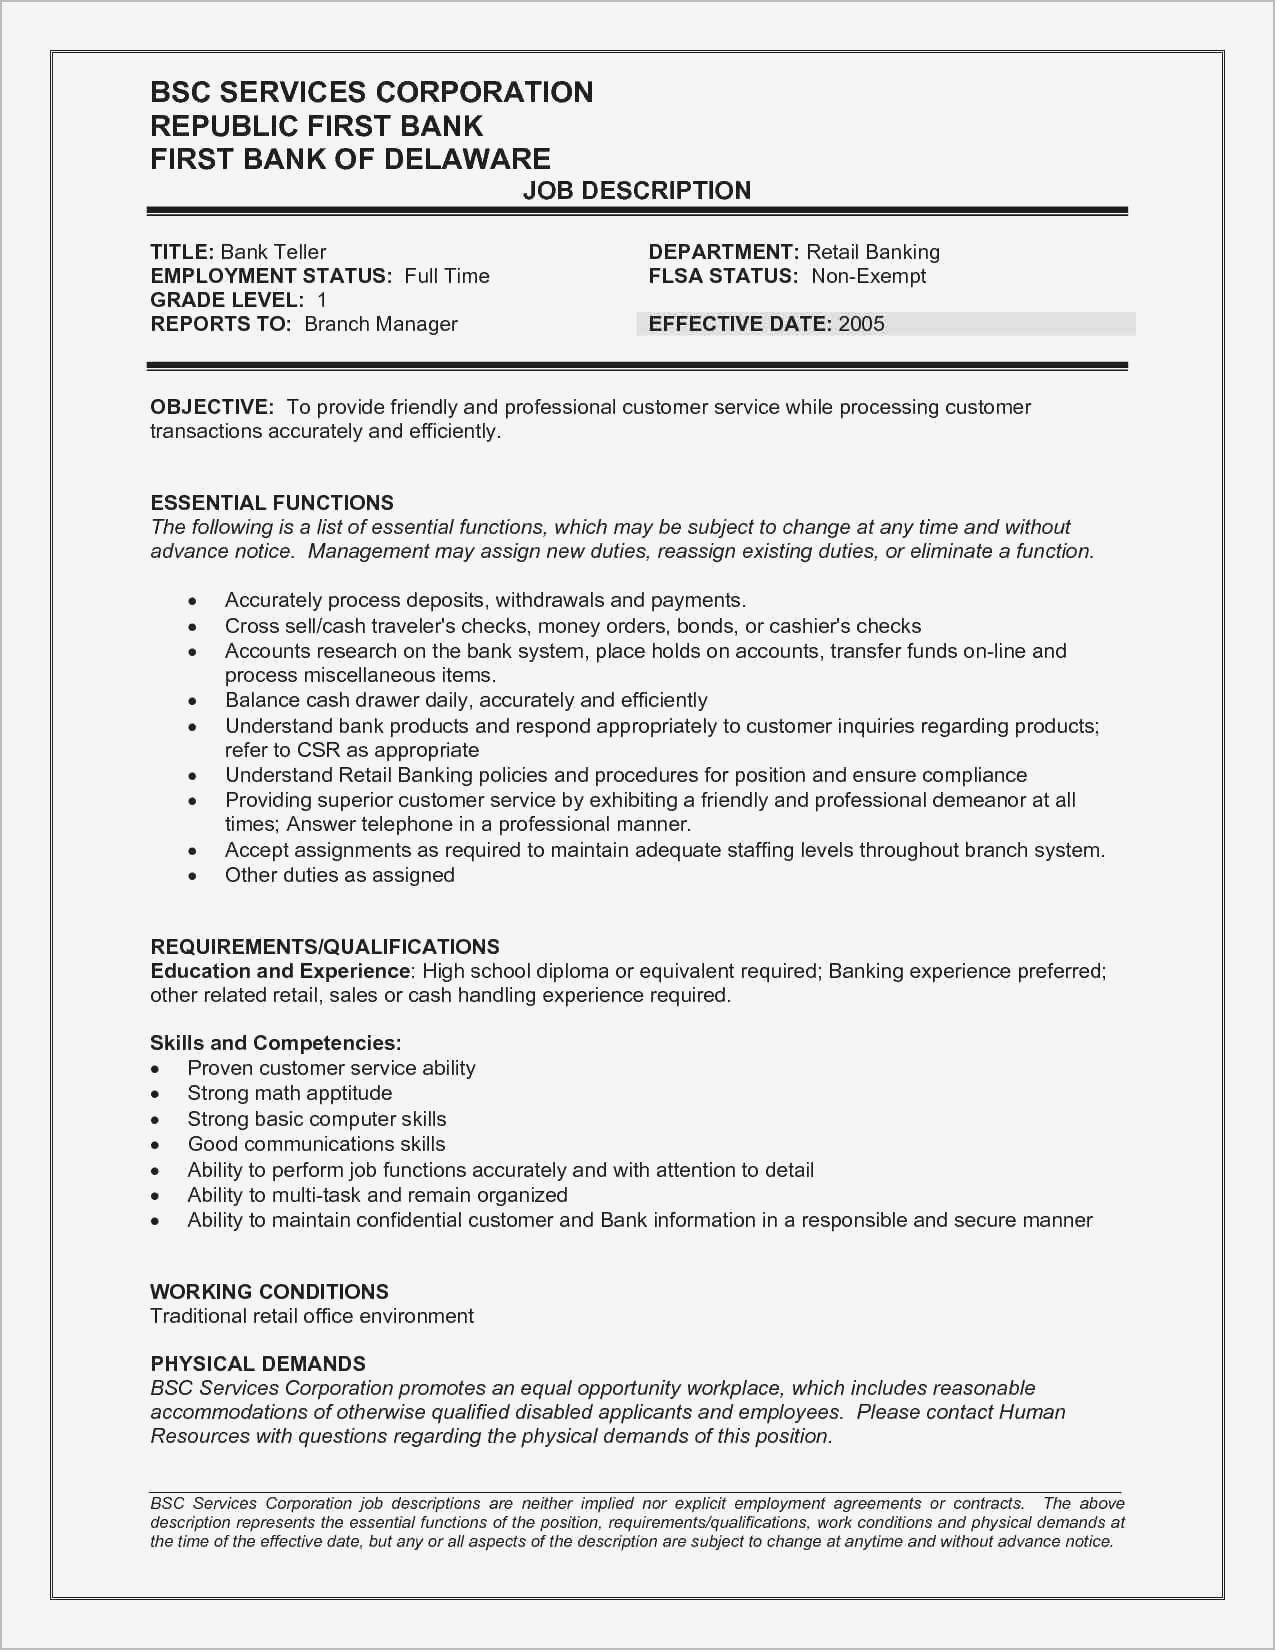 Supervisor Resume Samples - Basic Resume Examples for Retail Jobs Resume Resume Examples